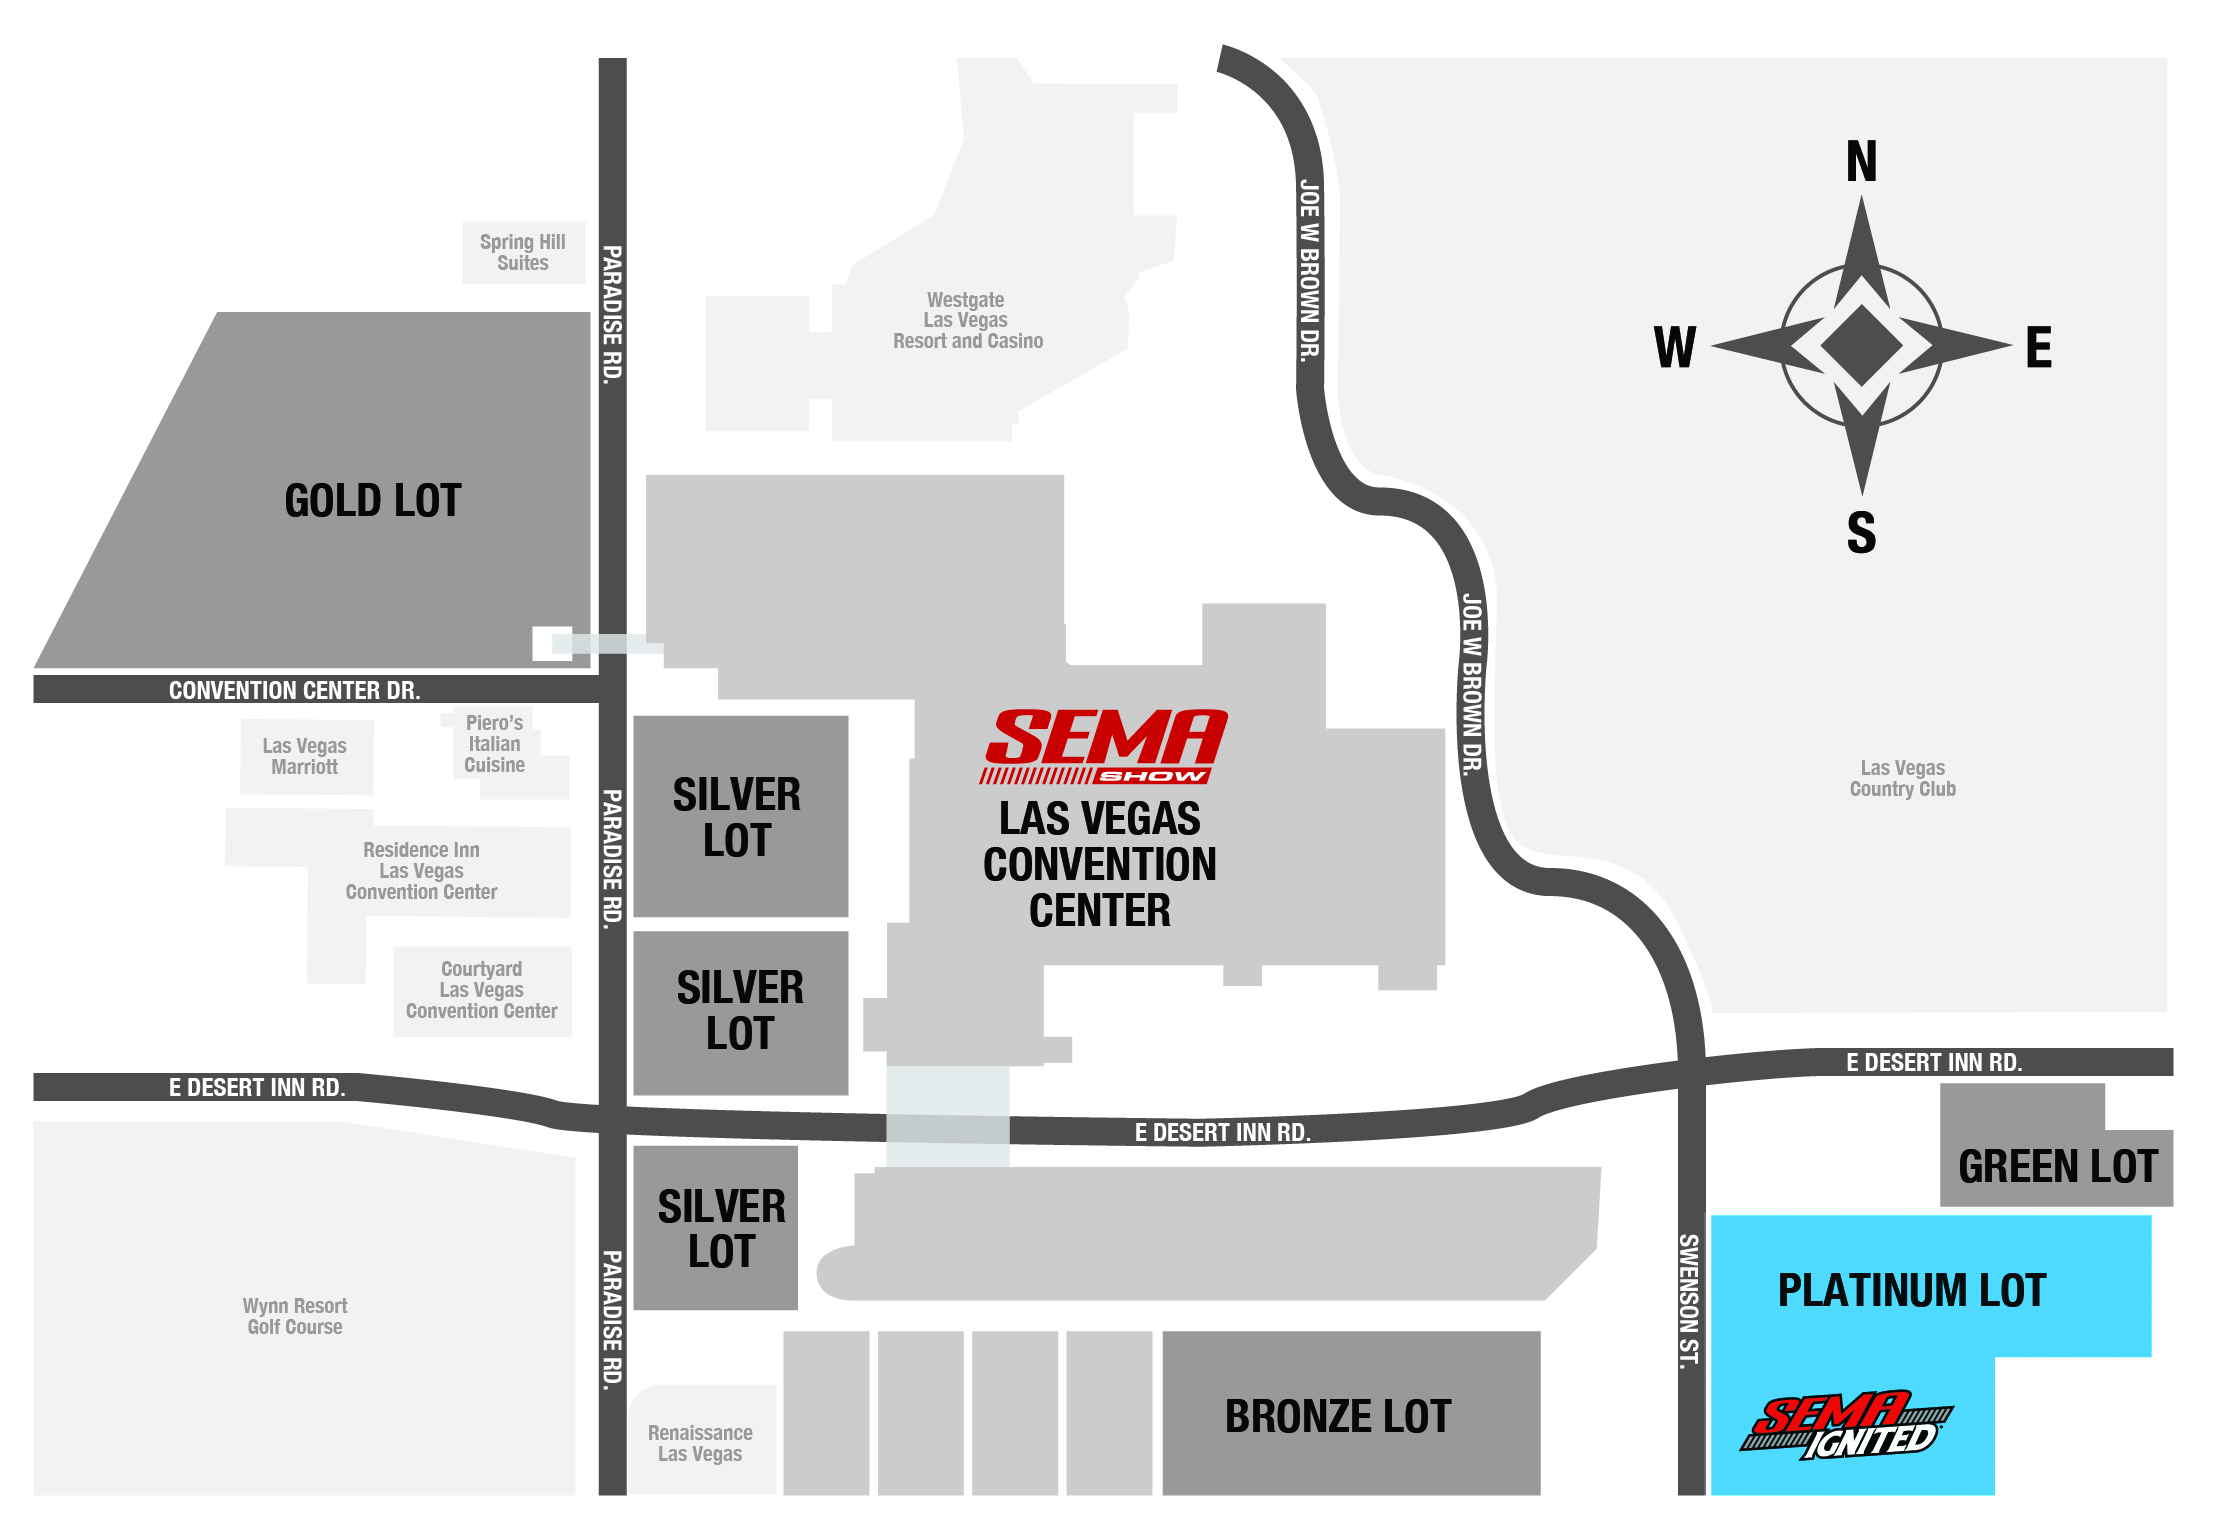 Plan Some Additional Time For Gaining Entrance To Sema Ignited Enhanced Security Precautions May Impact Attendees In High Traffic Areas During Peak Times